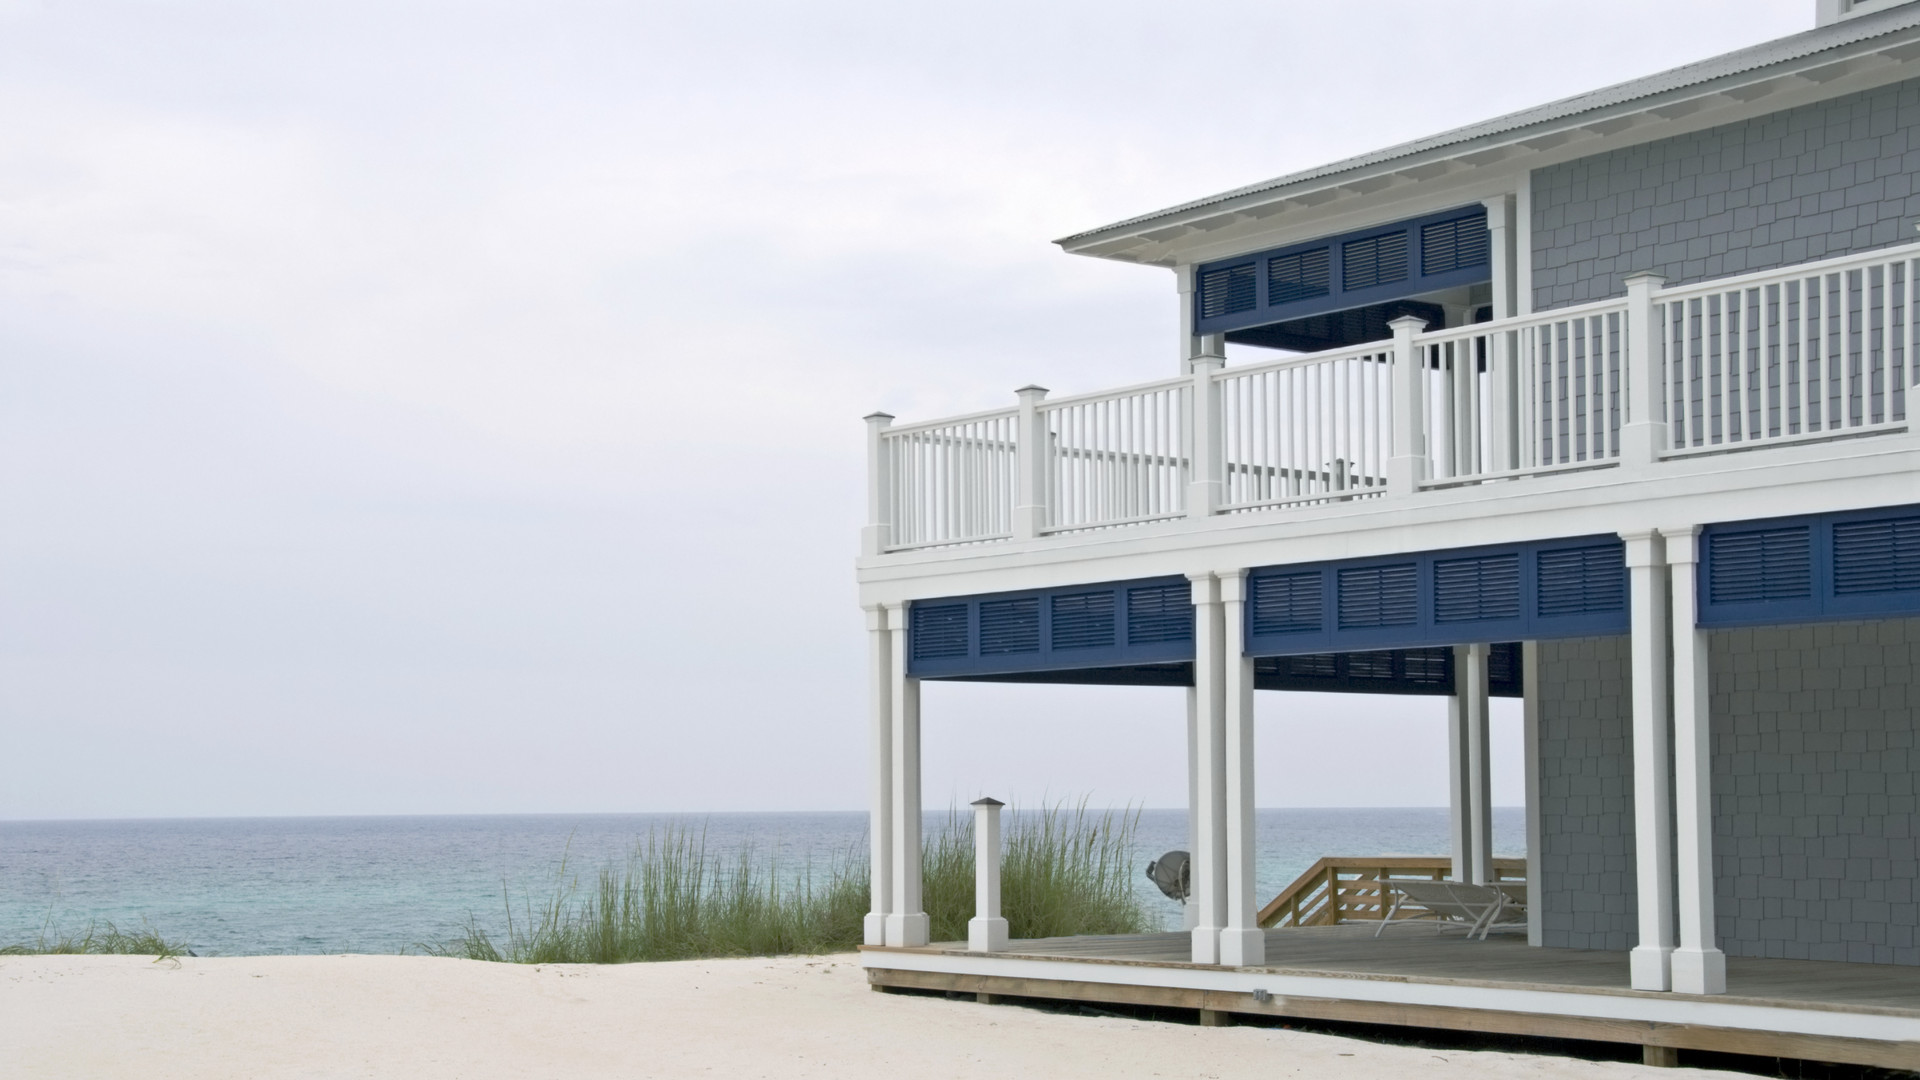 Two story beach house overlooking the Gulf of Mexico